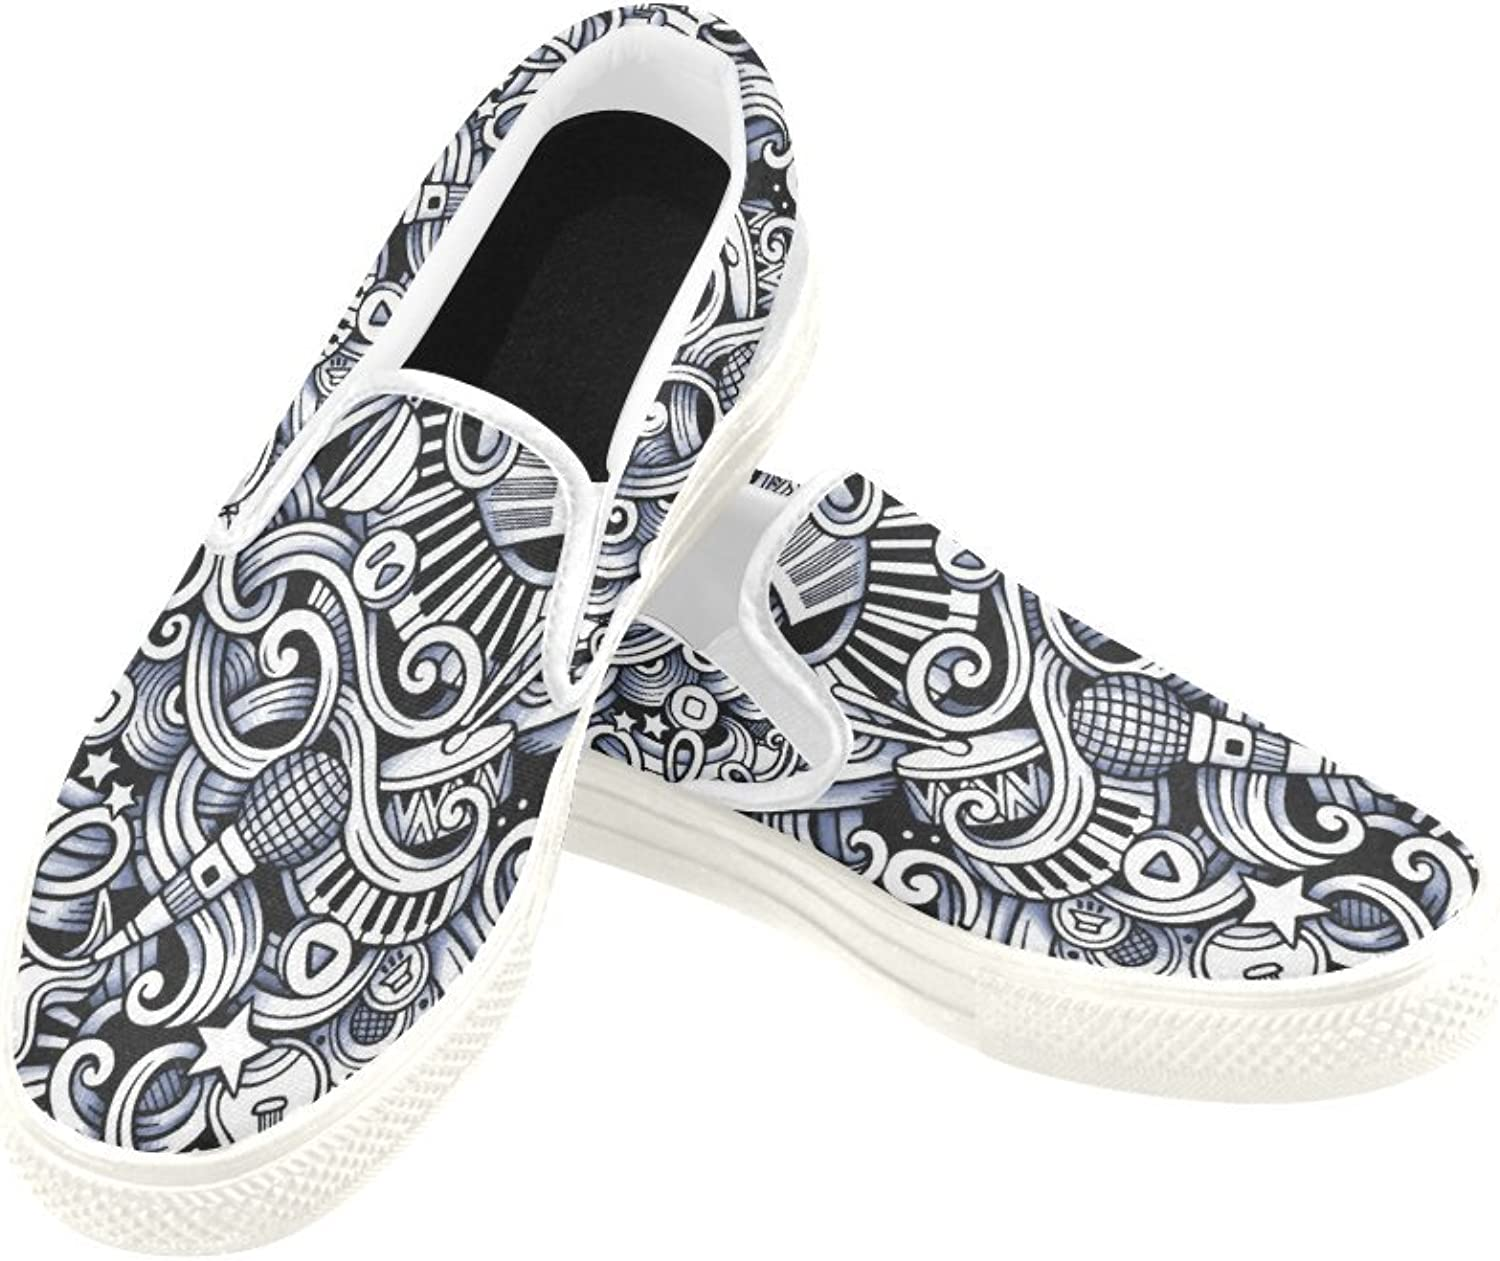 InterestPrint Womens Slip On Canvas shoes Loafers Music Style Girls Classic Casual Sneakers Flats